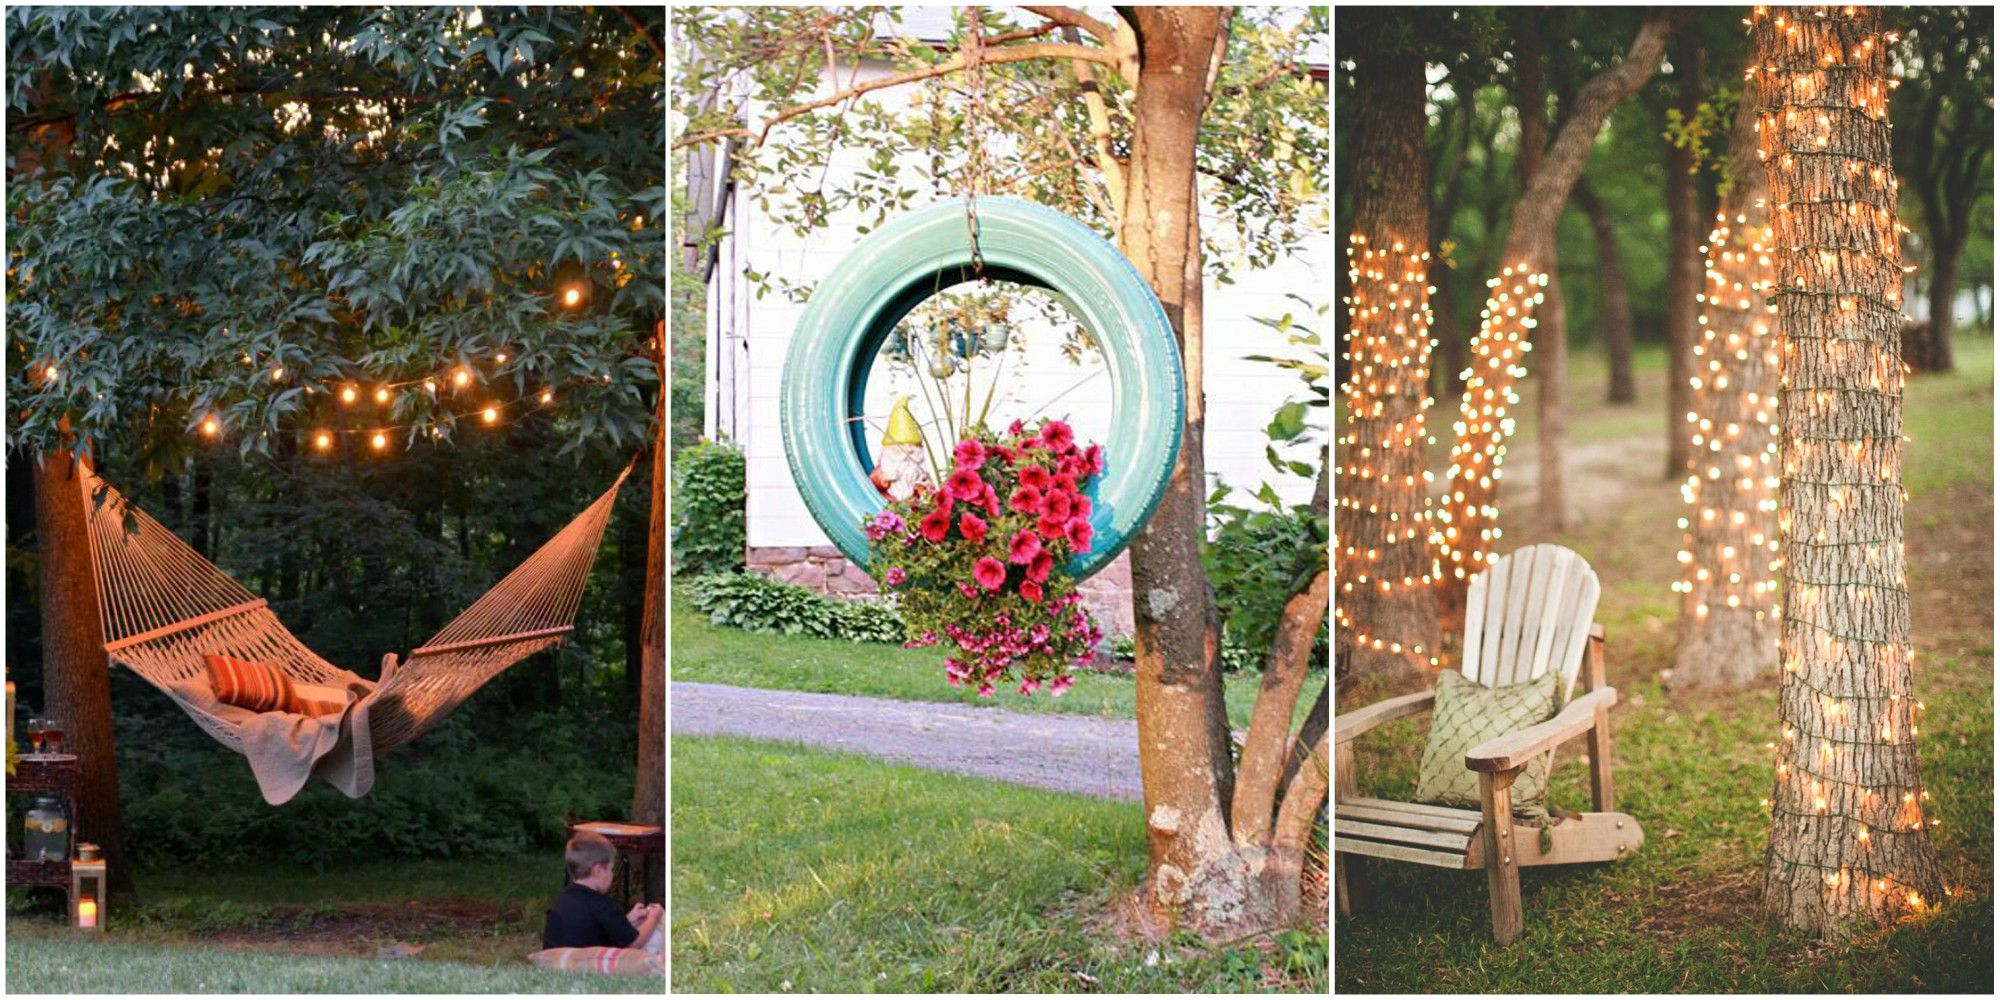 82 Diy Backyard Design Ideas Diy Backyard Decor Tips pertaining to 10 Some of the Coolest Concepts of How to Build Fun Backyard Design Ideas